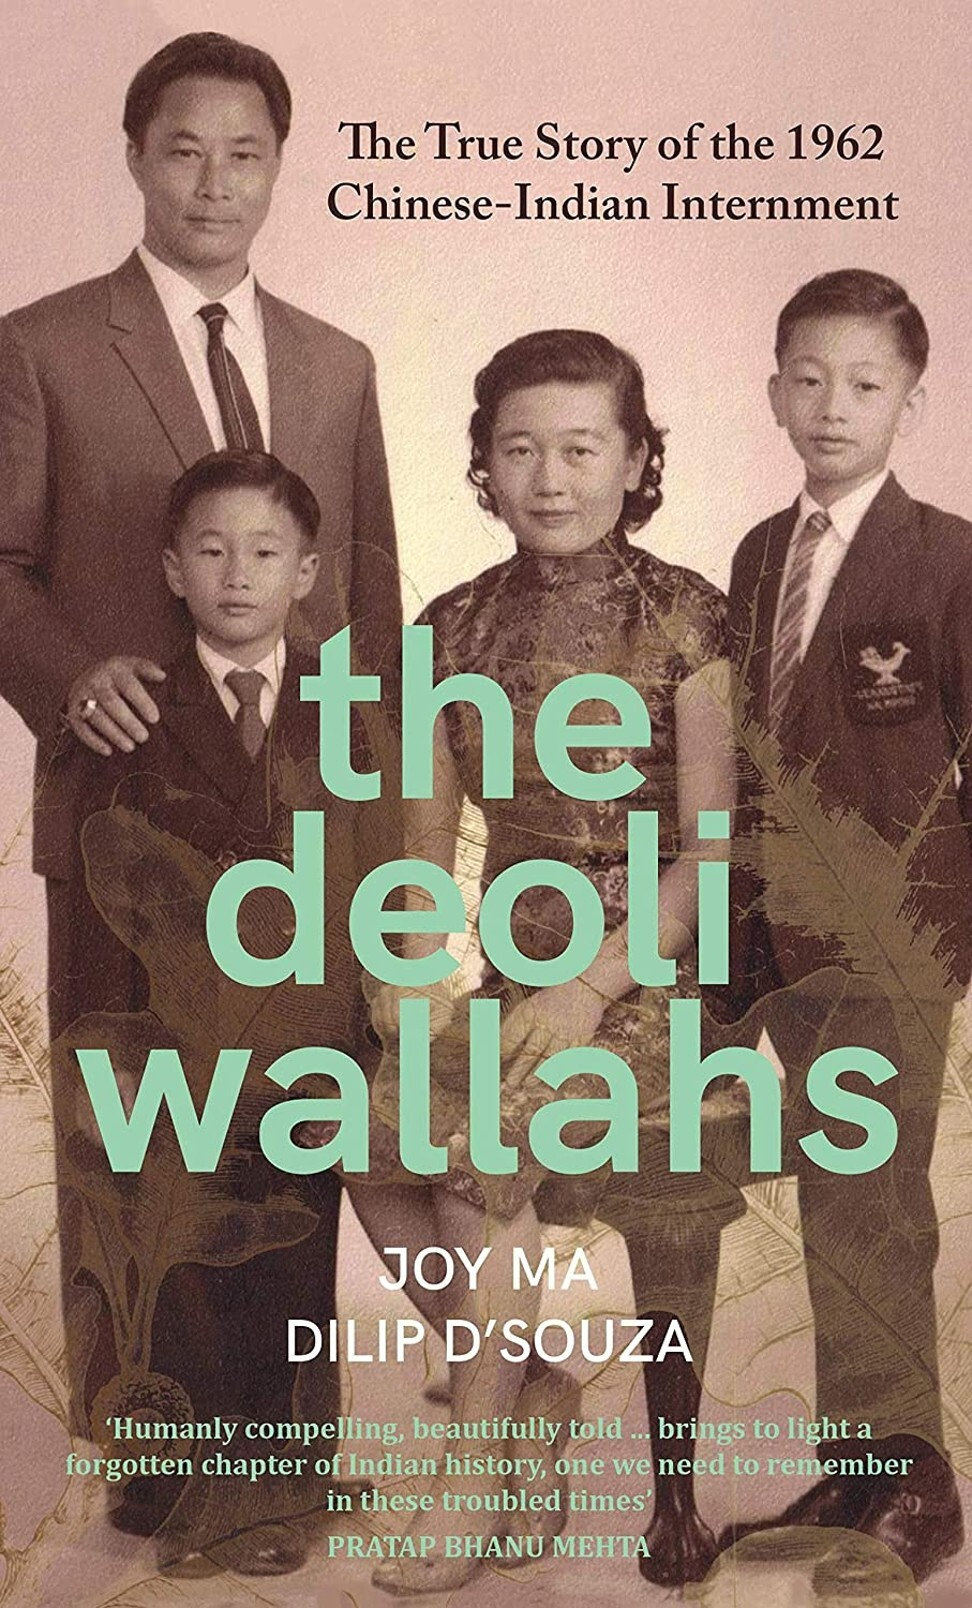 The Deoliwallahs tells the story of the internment of members of the Chinese-Indian community in a former World War II camp in Deoli, Rajasthan, from 1962 to 1967. Photo: Handout